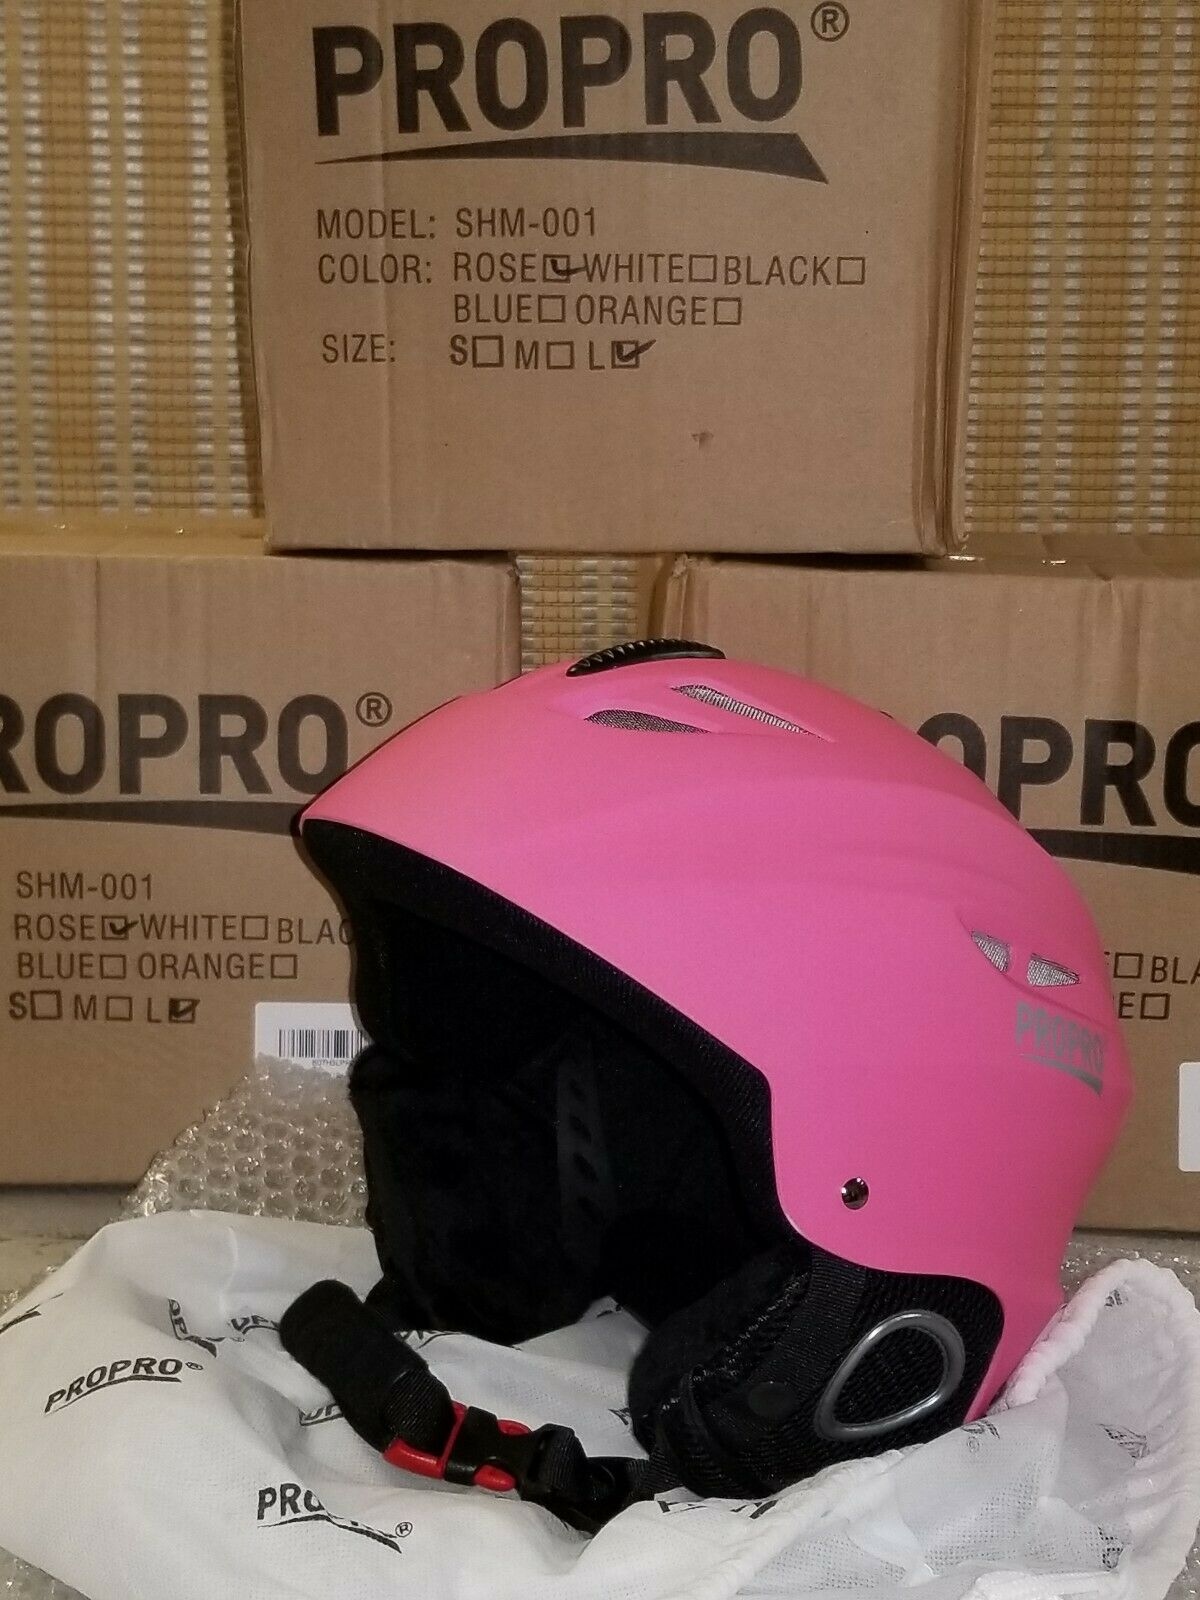 NIB Propro Pink  Ski  Snowboard Helmet Size Adult Large S board, Model SHM-001  first time reply